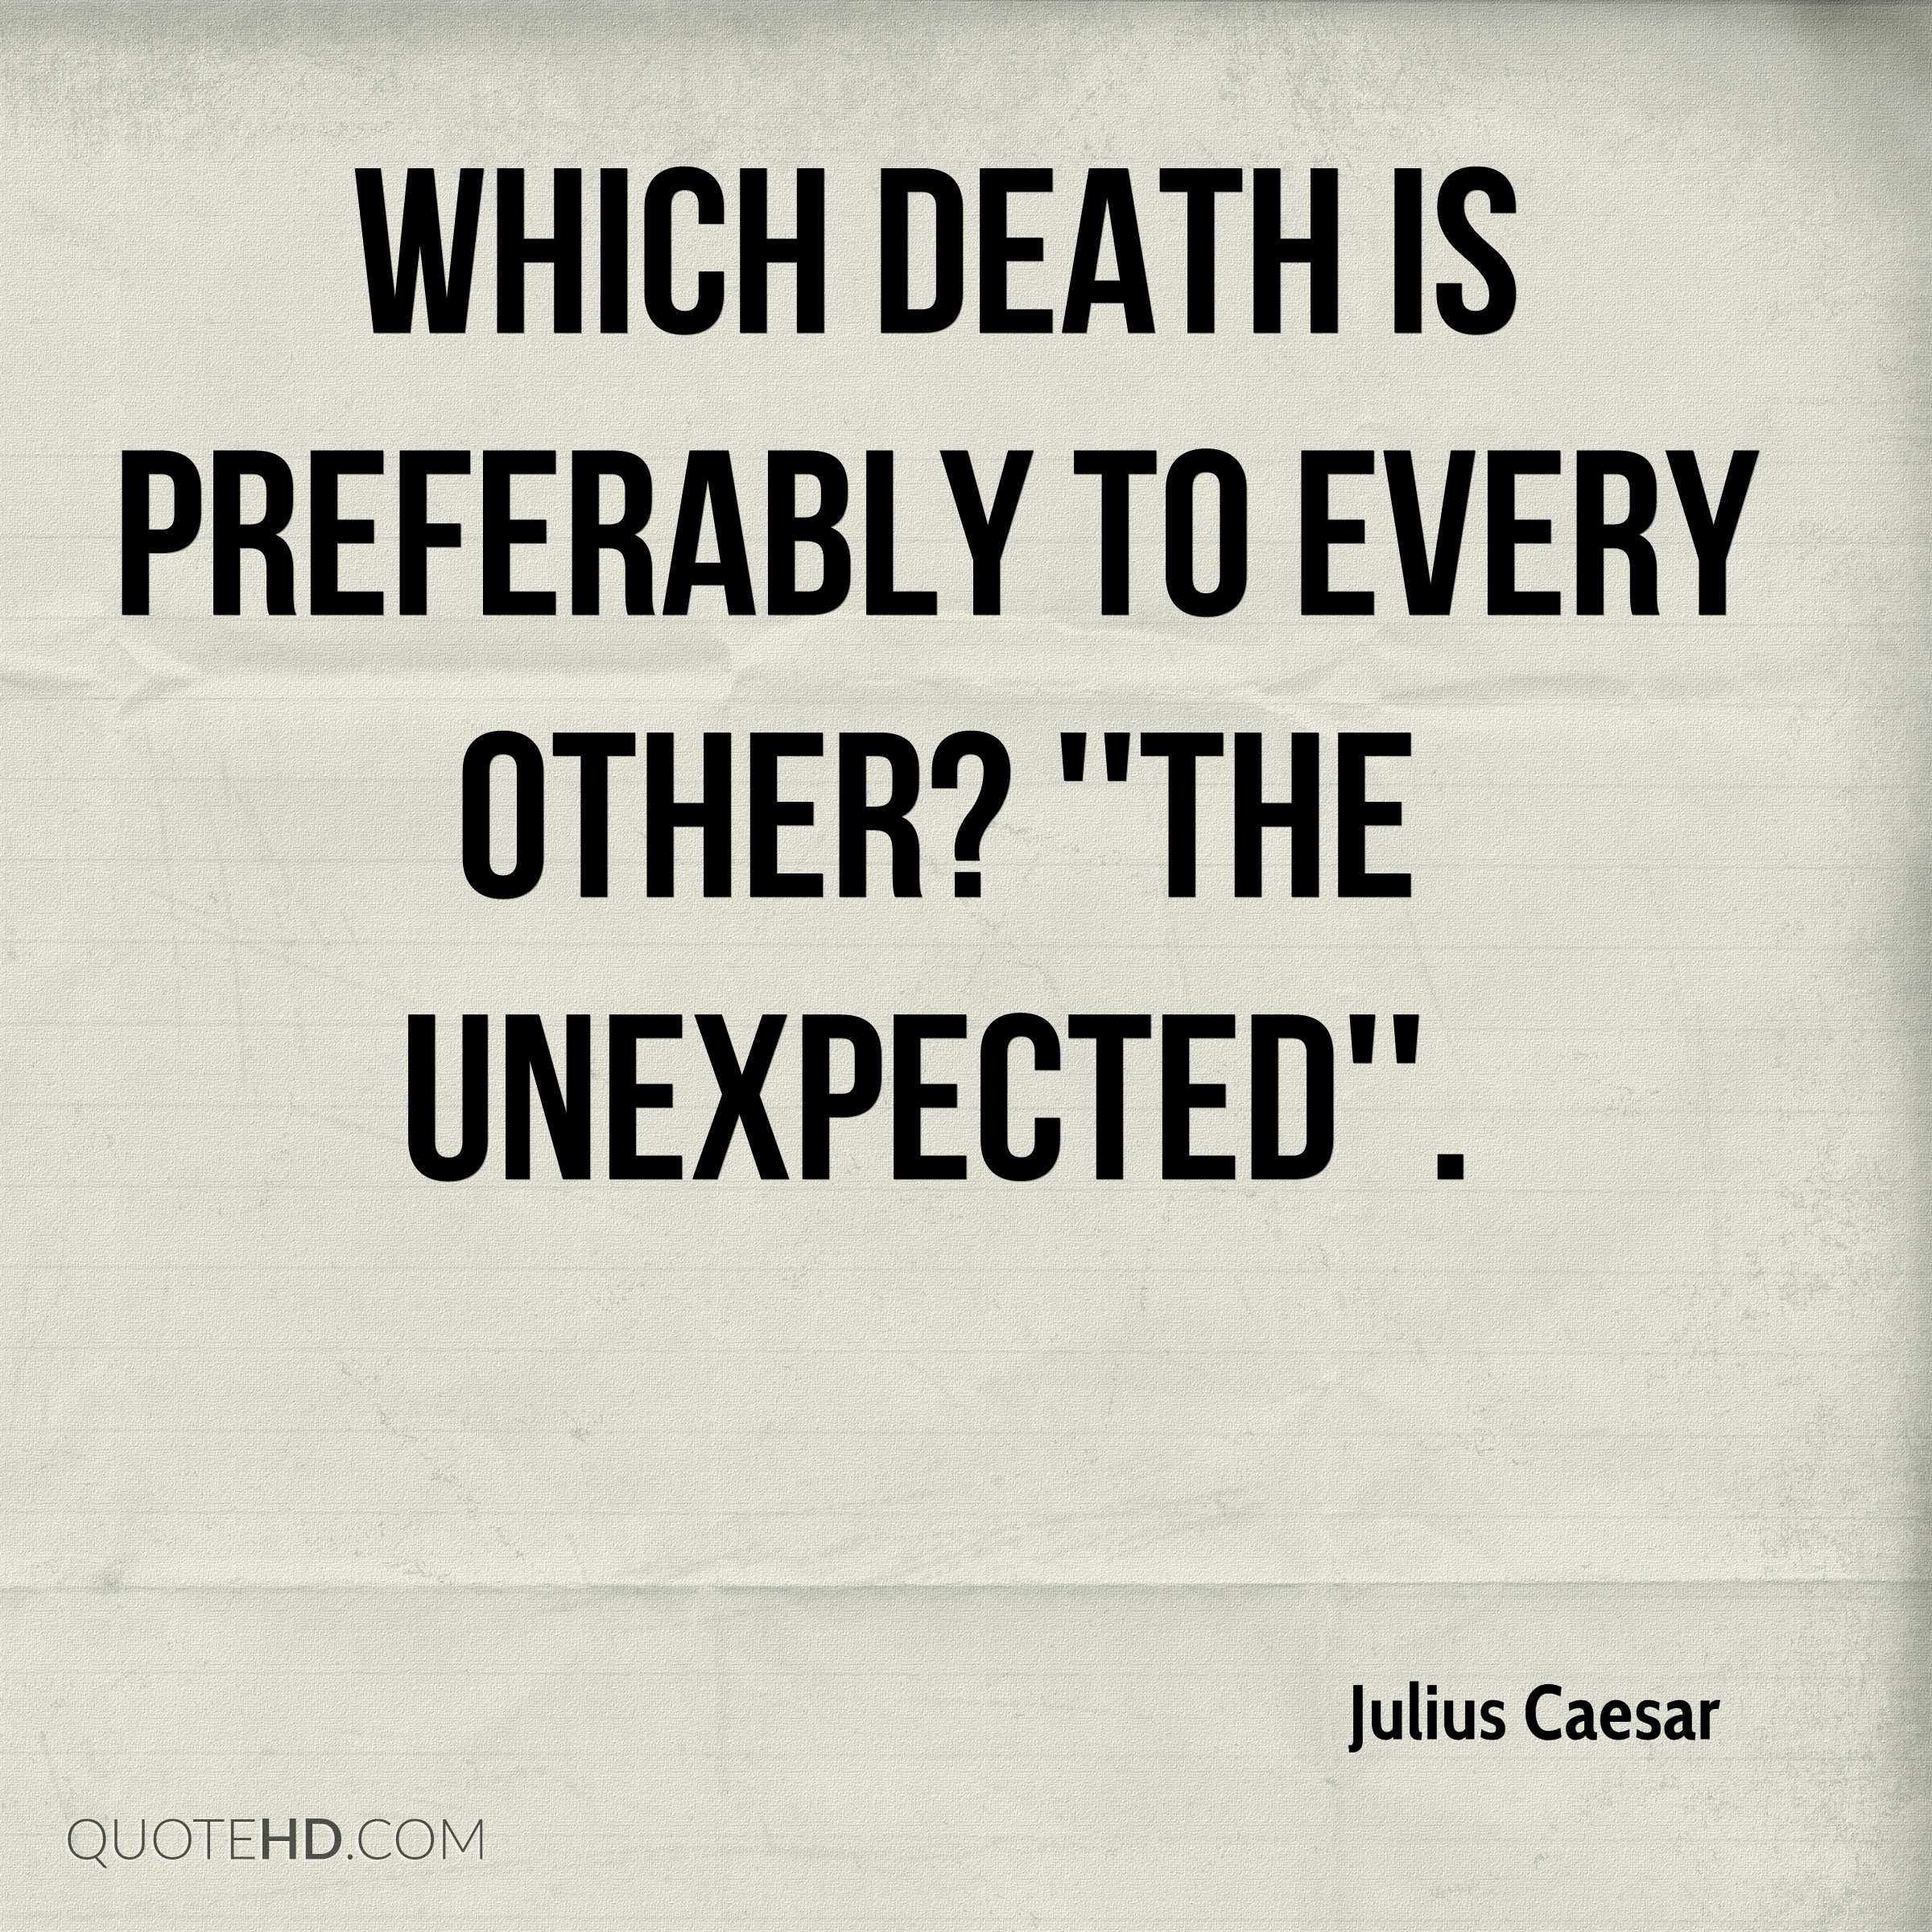 Which death is preferably to every other? ''The unexpected''.